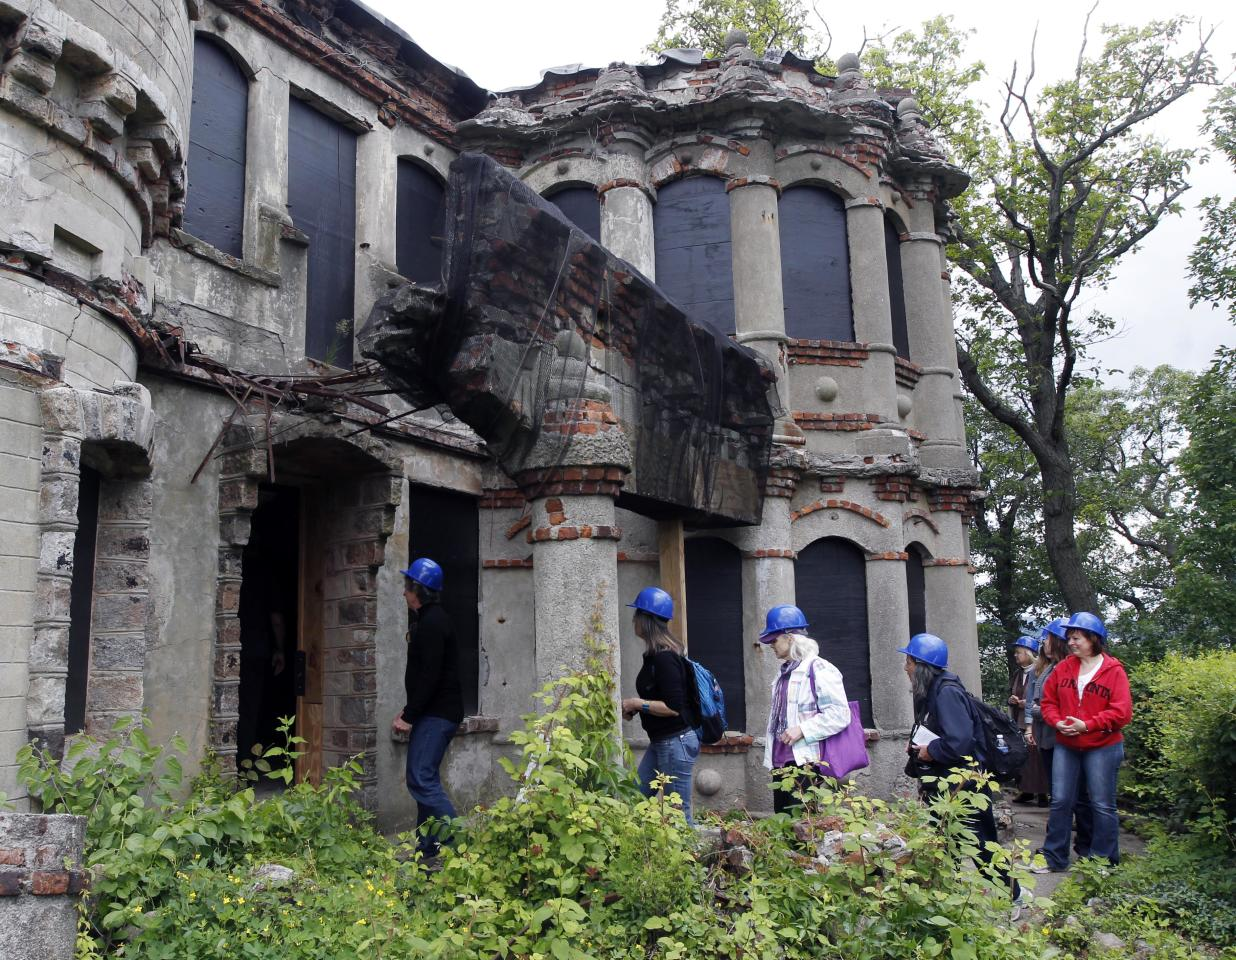 Media and tourism officials enter the Bannerman residence during a tour of the Bannerman Castle on Pollepel Island, N.Y., on Tuesday, June 5, 2012. Though it looks like it was built to withstand battering rams, it was actually a surplus military goods warehouse made to resemble a Scottish castle. Businessman Francis Bannerman VI had it built early in the 20th century as a place to store helmets, haversacks, mess kits and munitions he could not store in his thriving shop in Manhattan. (AP Photo/Mike Groll)